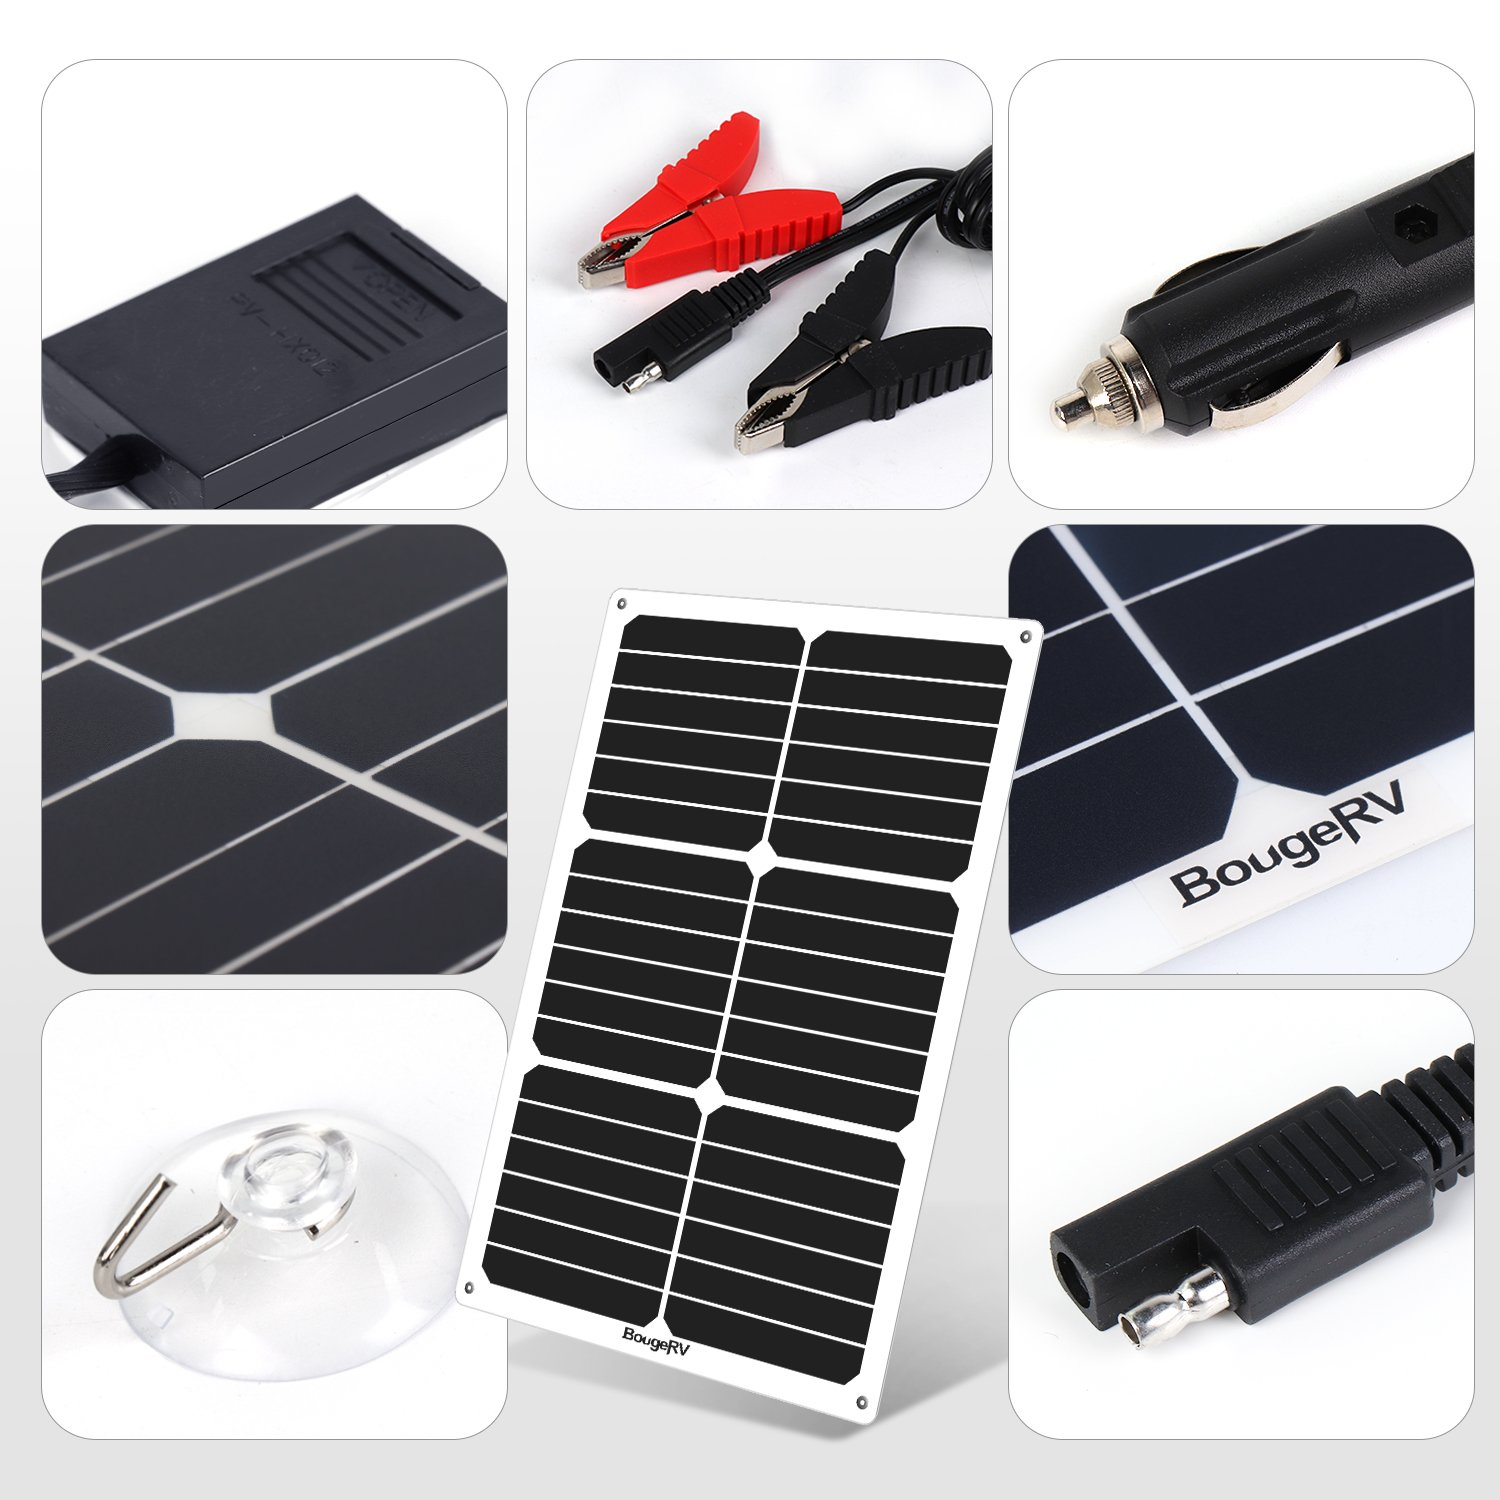 Bougerv 18w 18v 12v Solar Car Battery Charger Sunpower Portable